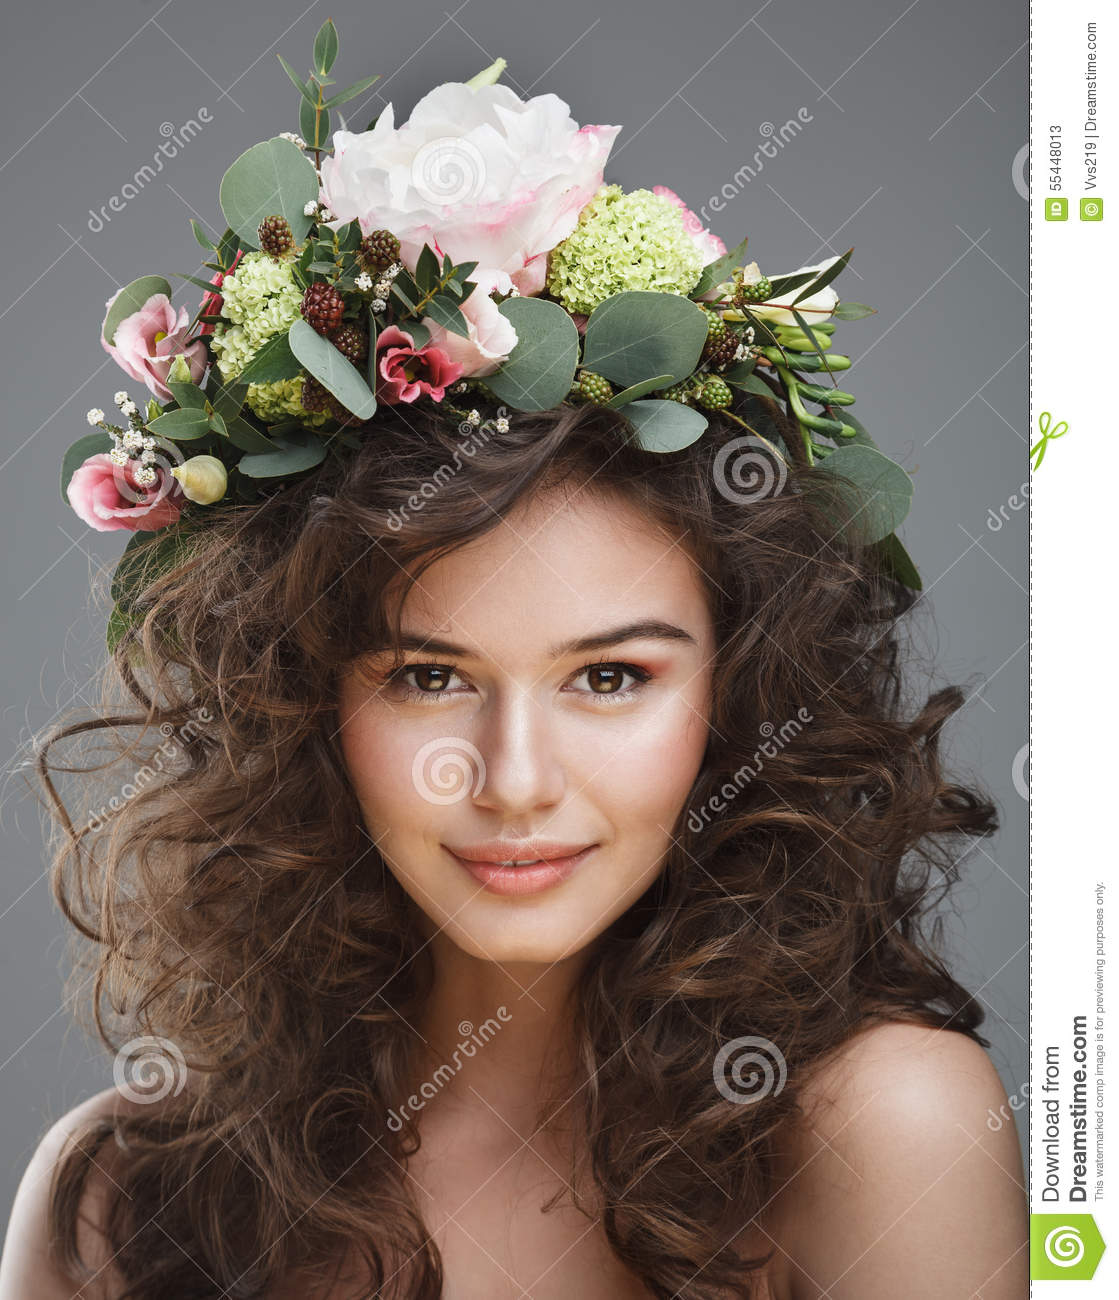 Stubio beauty portrait of cute young woman with flower crown stock download comp izmirmasajfo